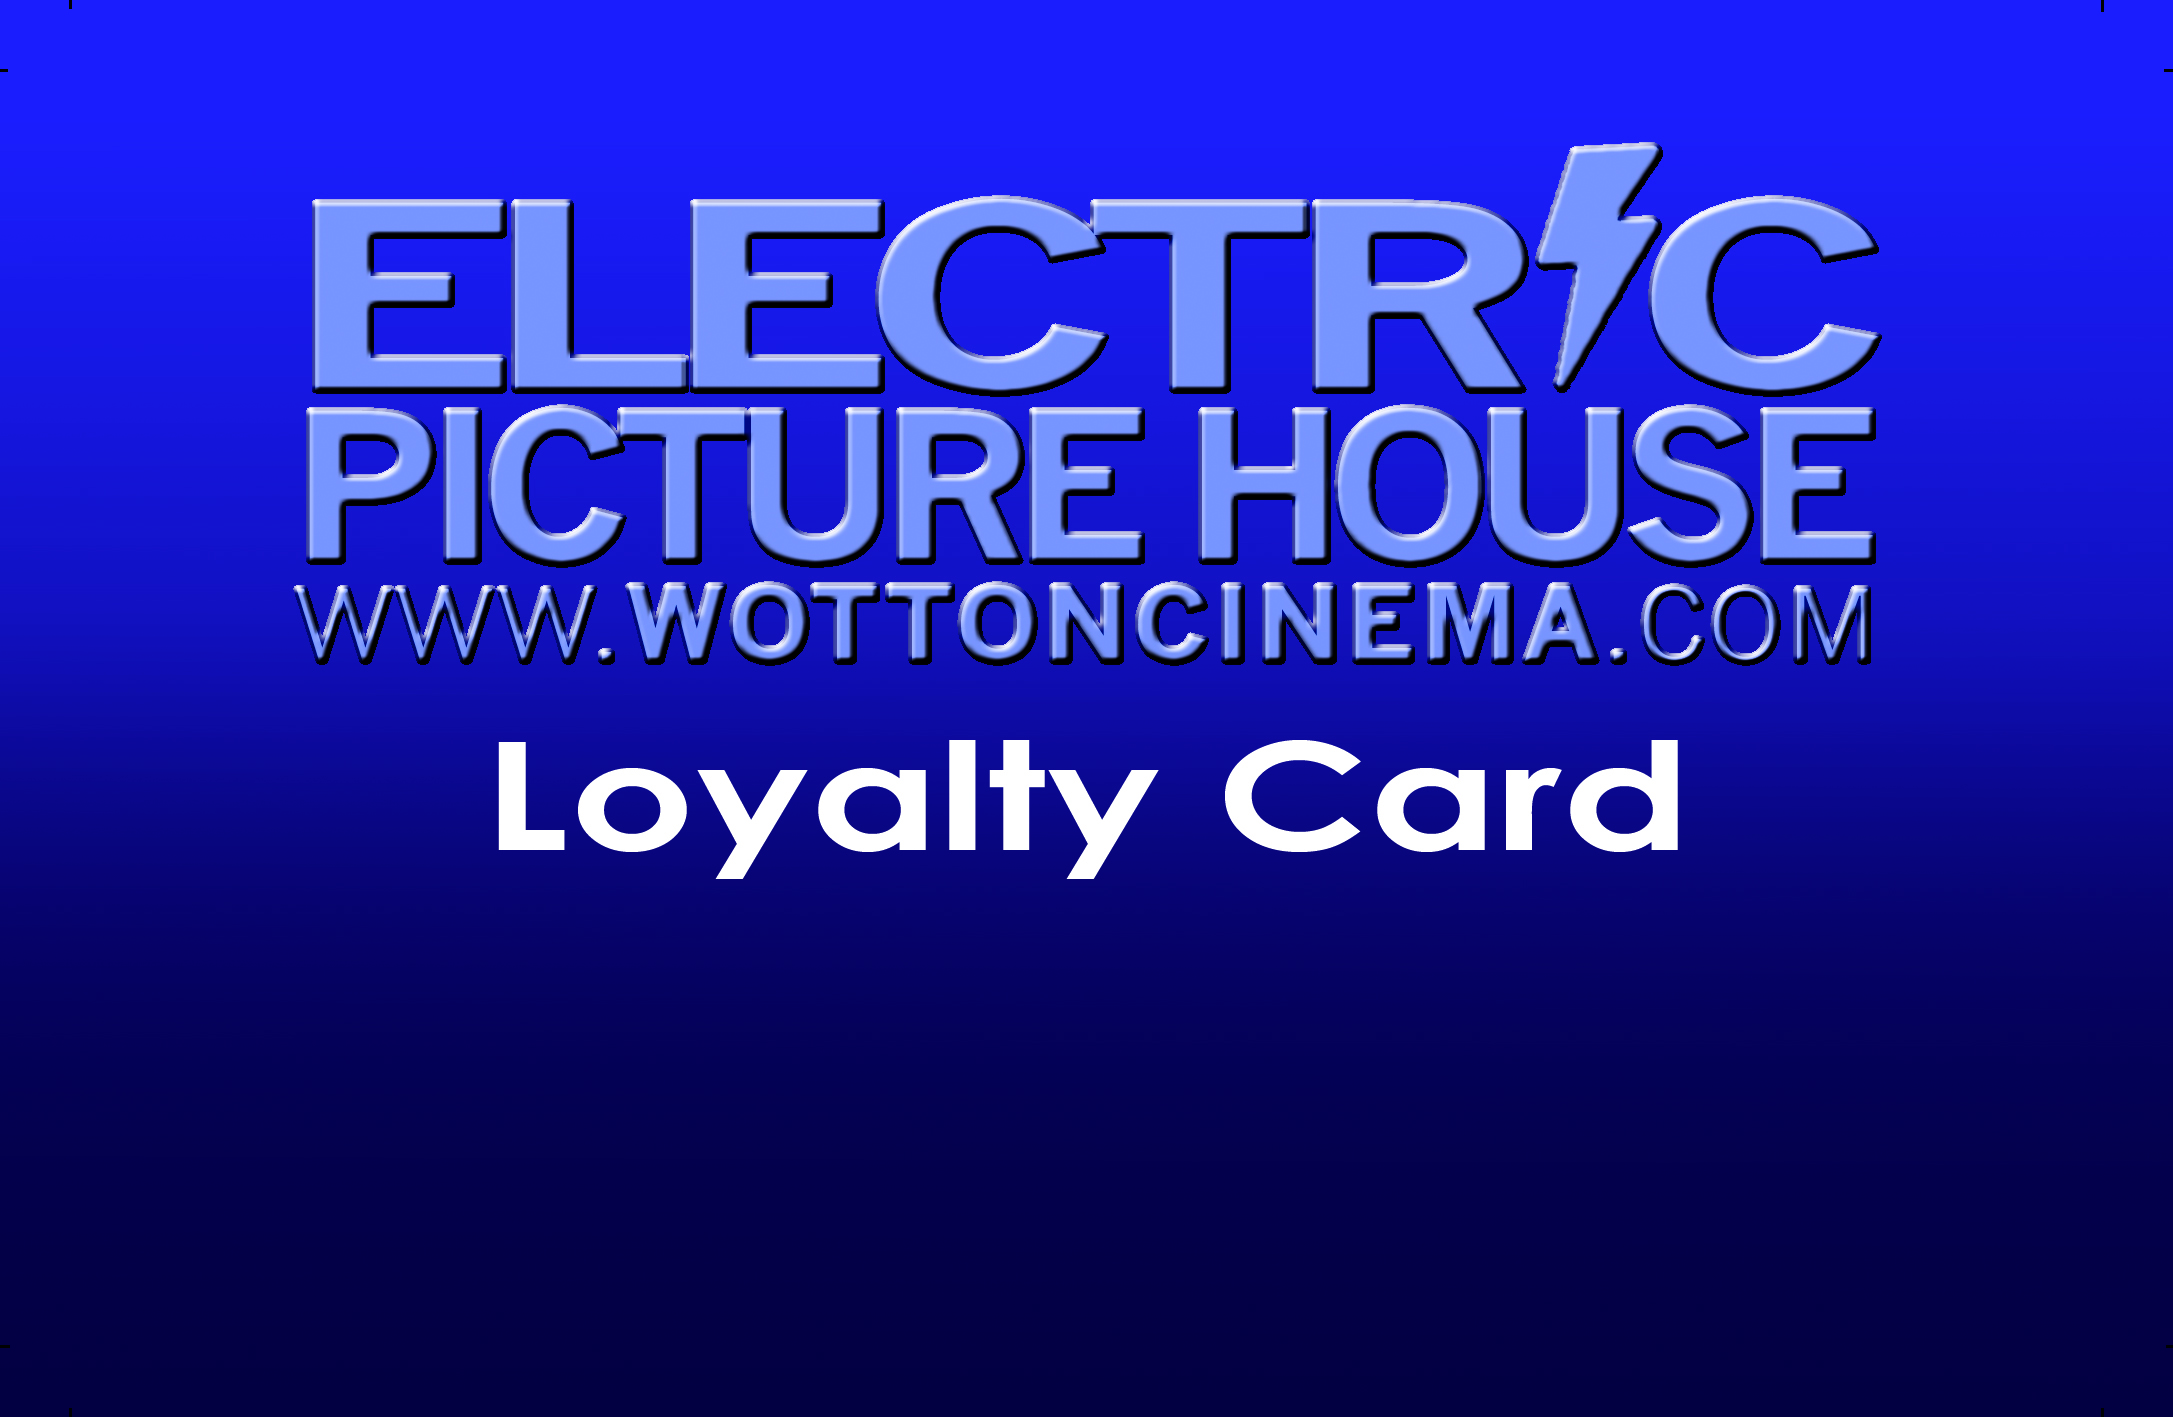 Electric Picture House Cinema Loyalty Card